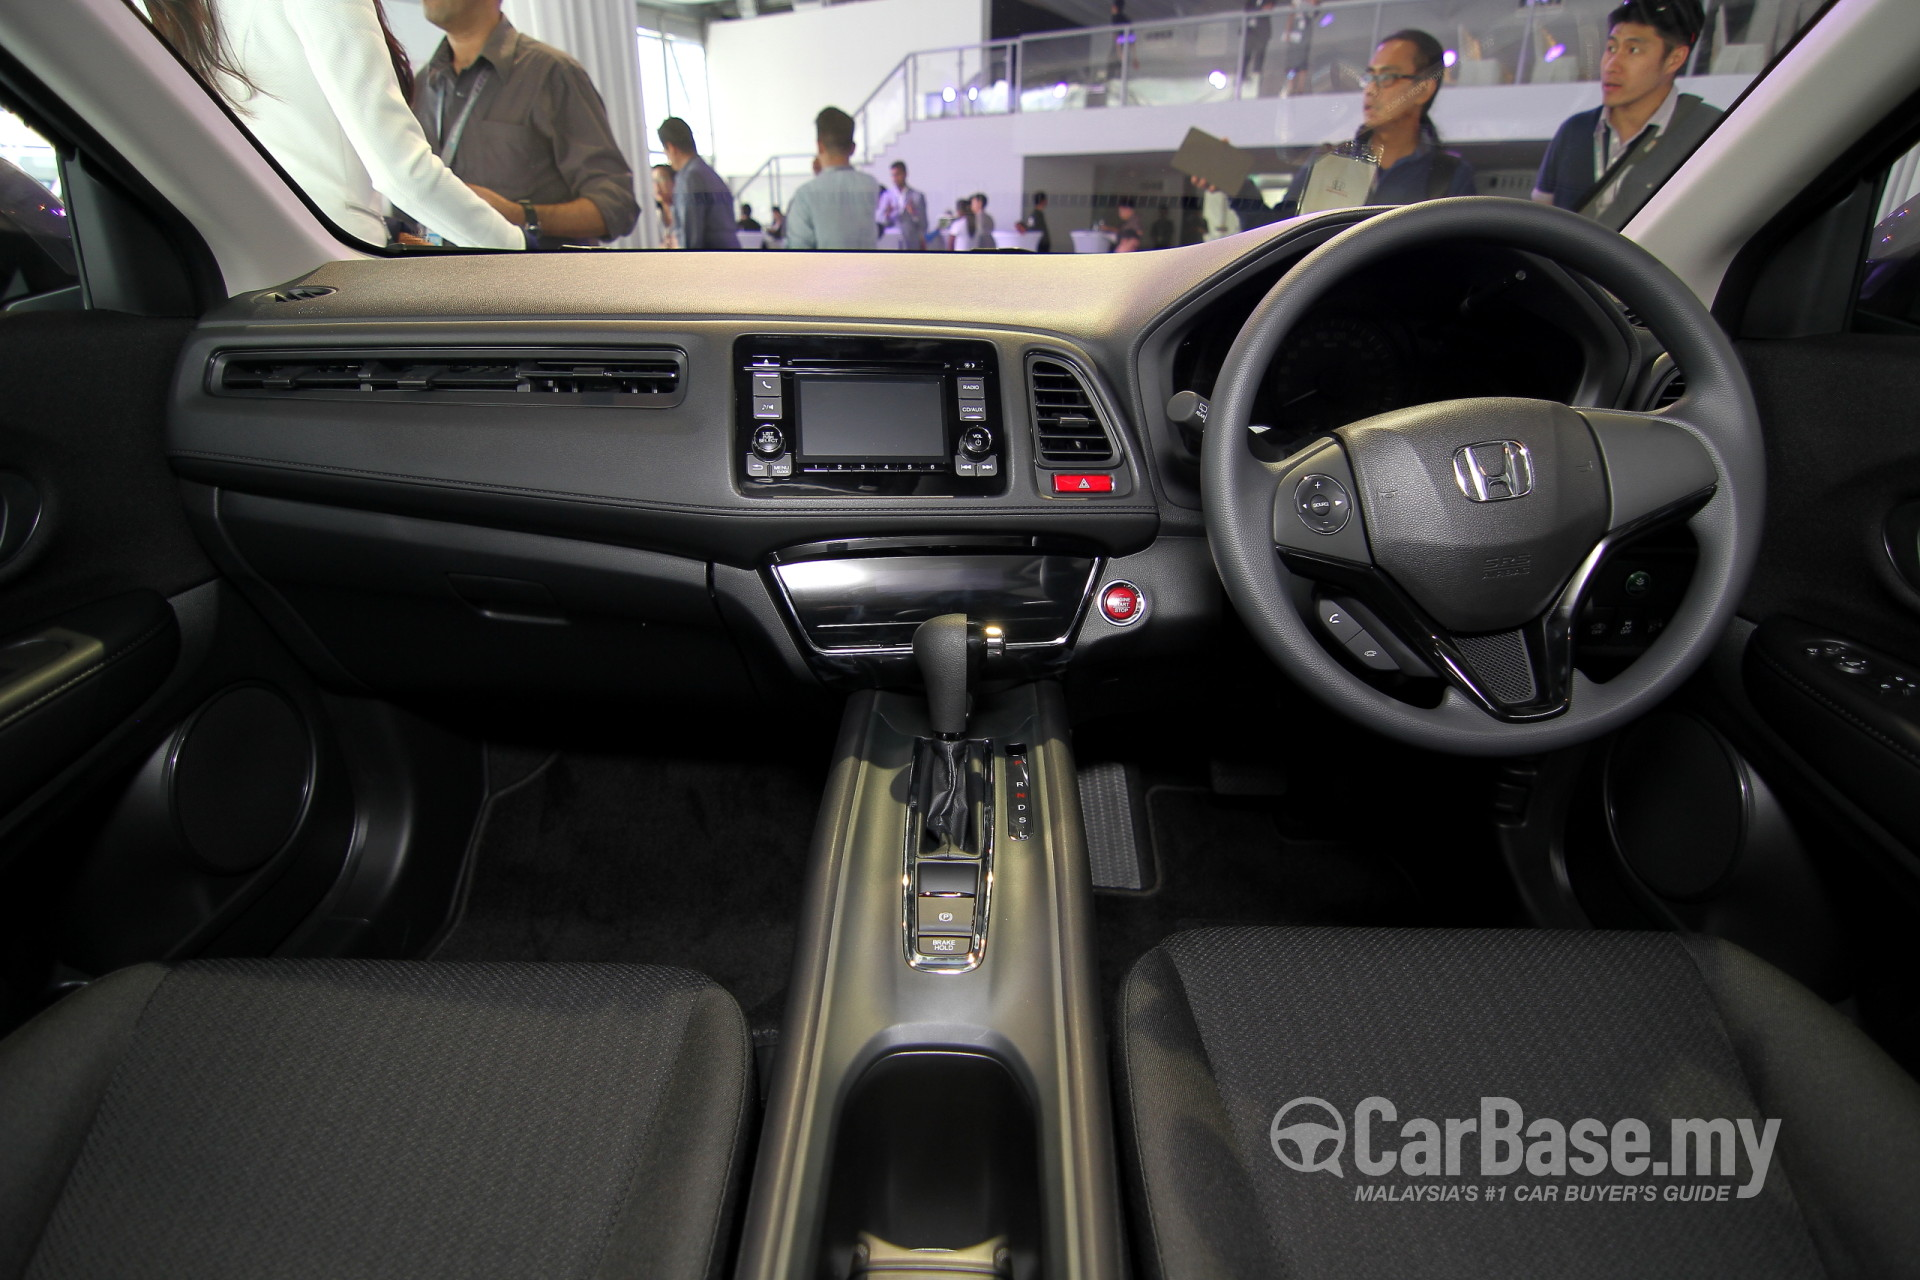 https://s1.carbase.my/upload/24/348/335/interior/s13-1424164709-9853-honda-hr-v.jpg